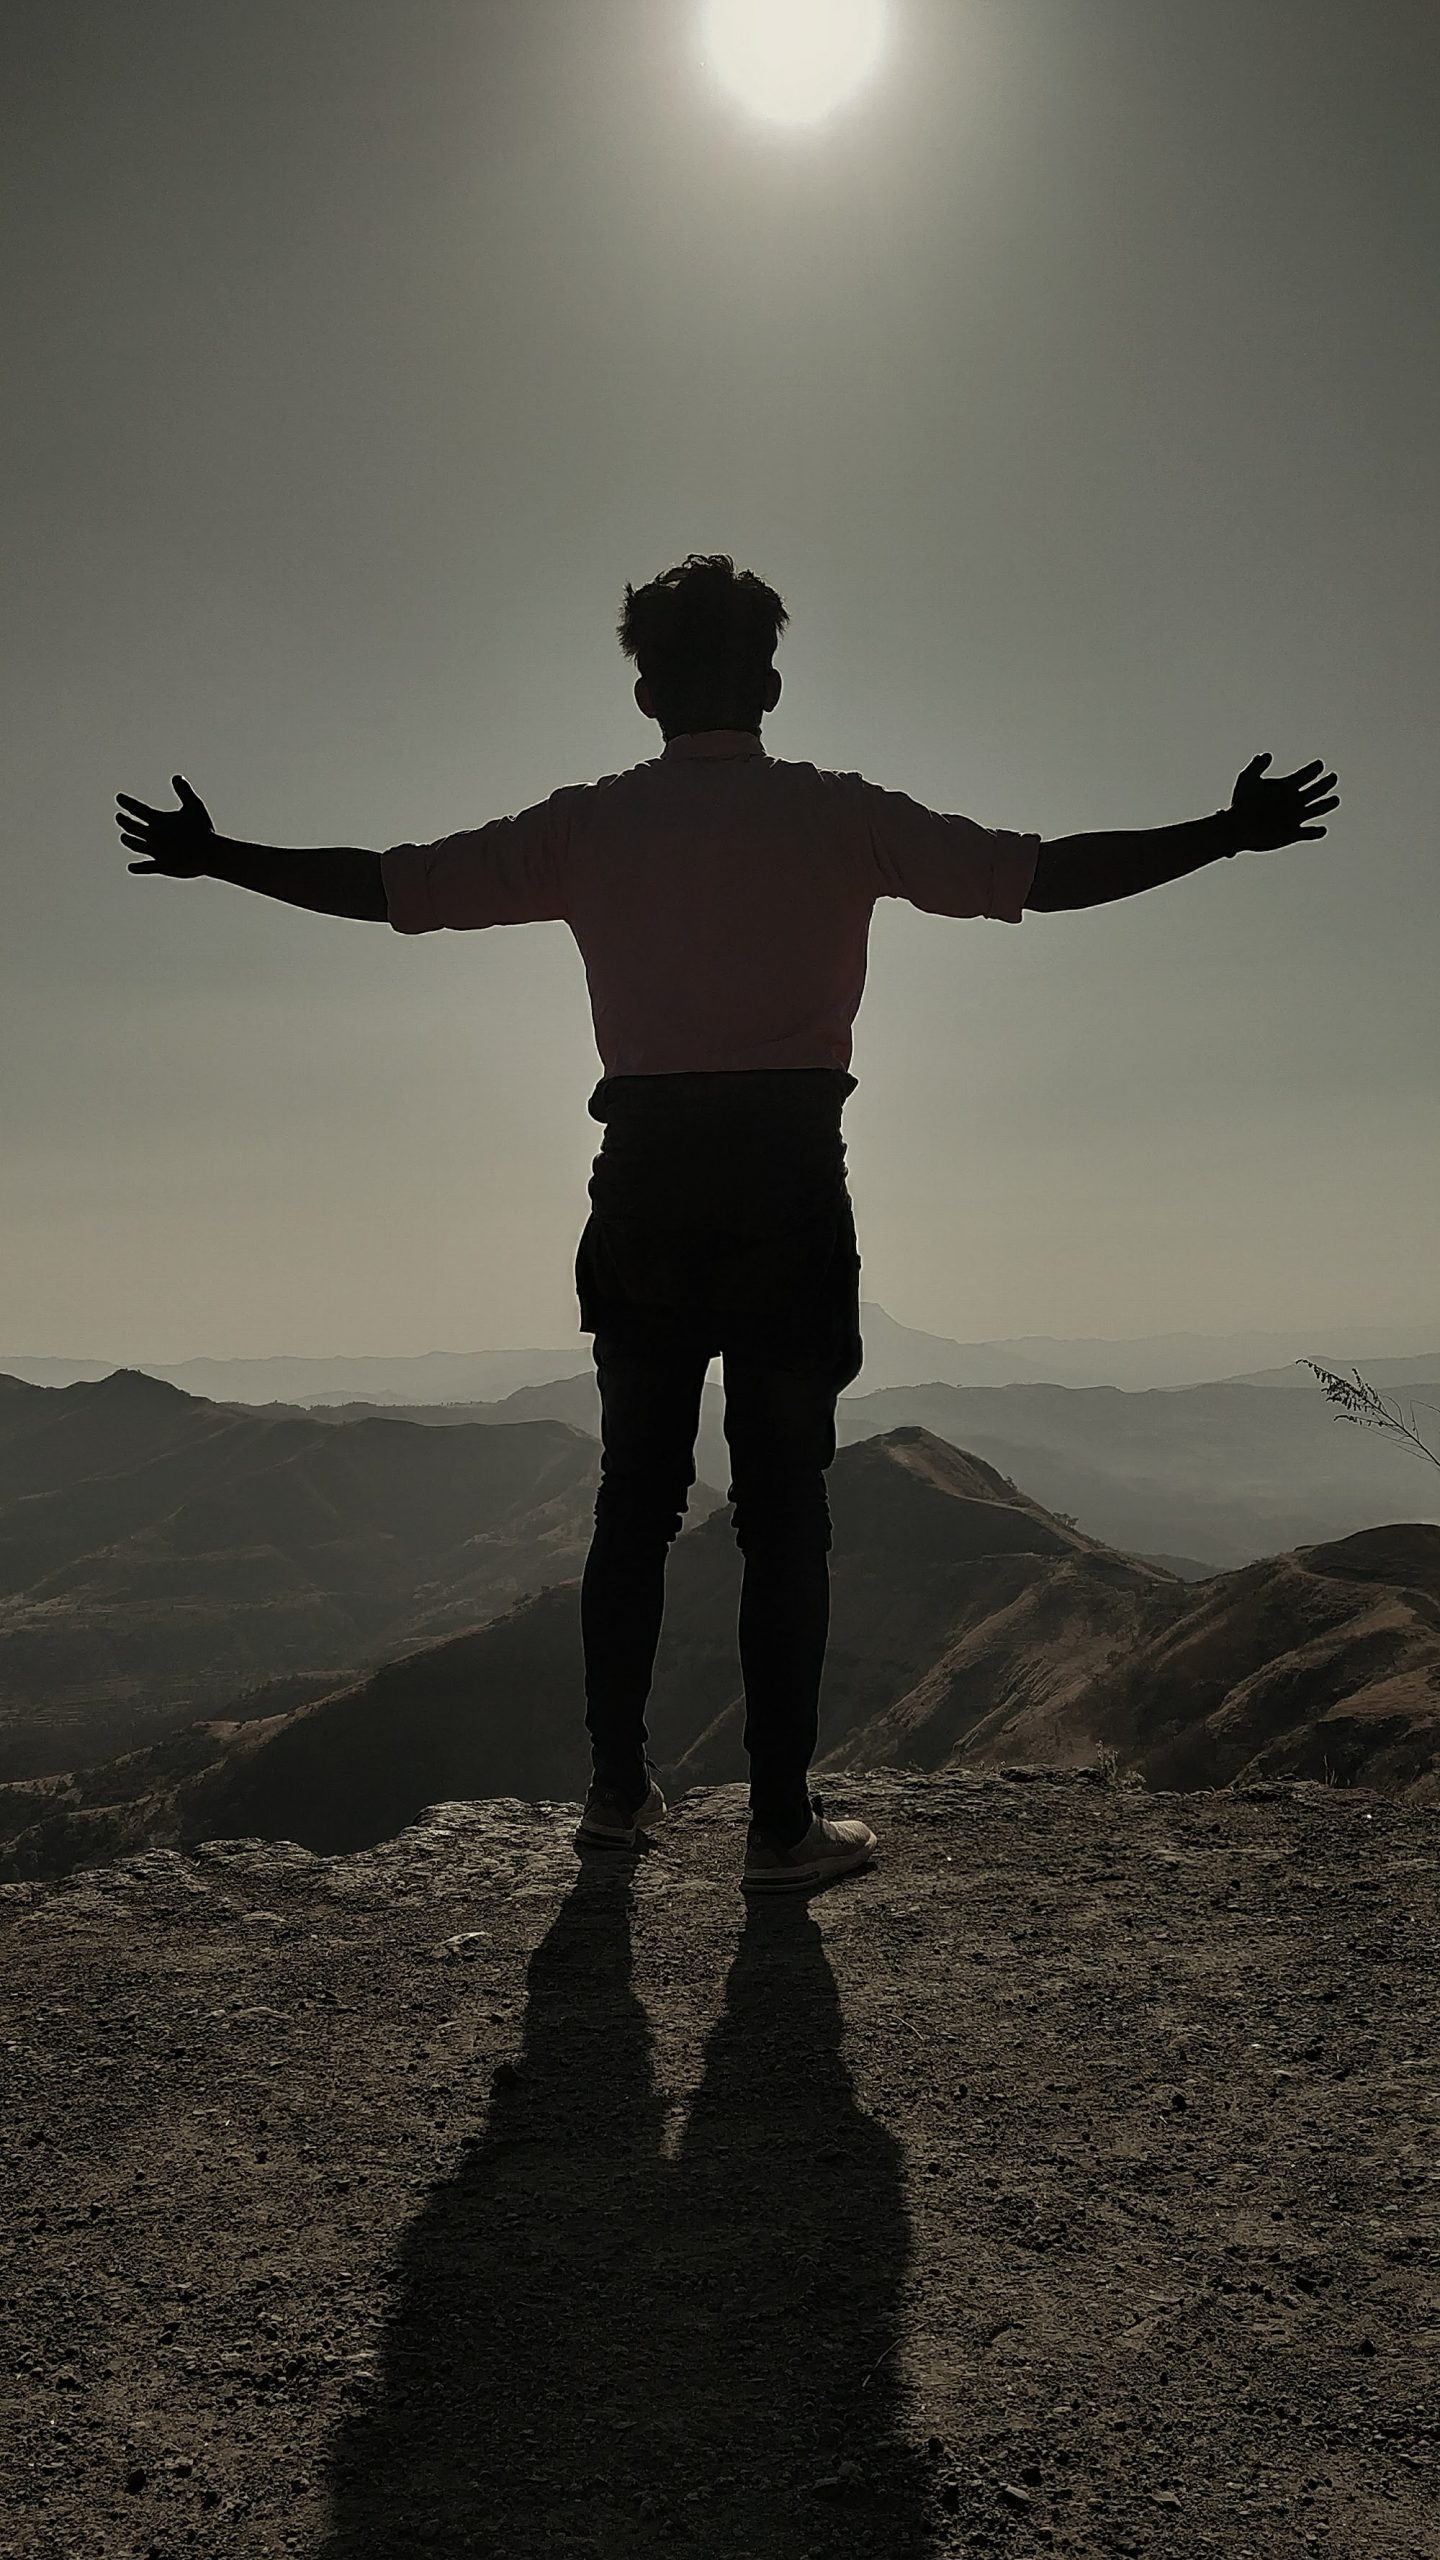 A boy standing on a cliff